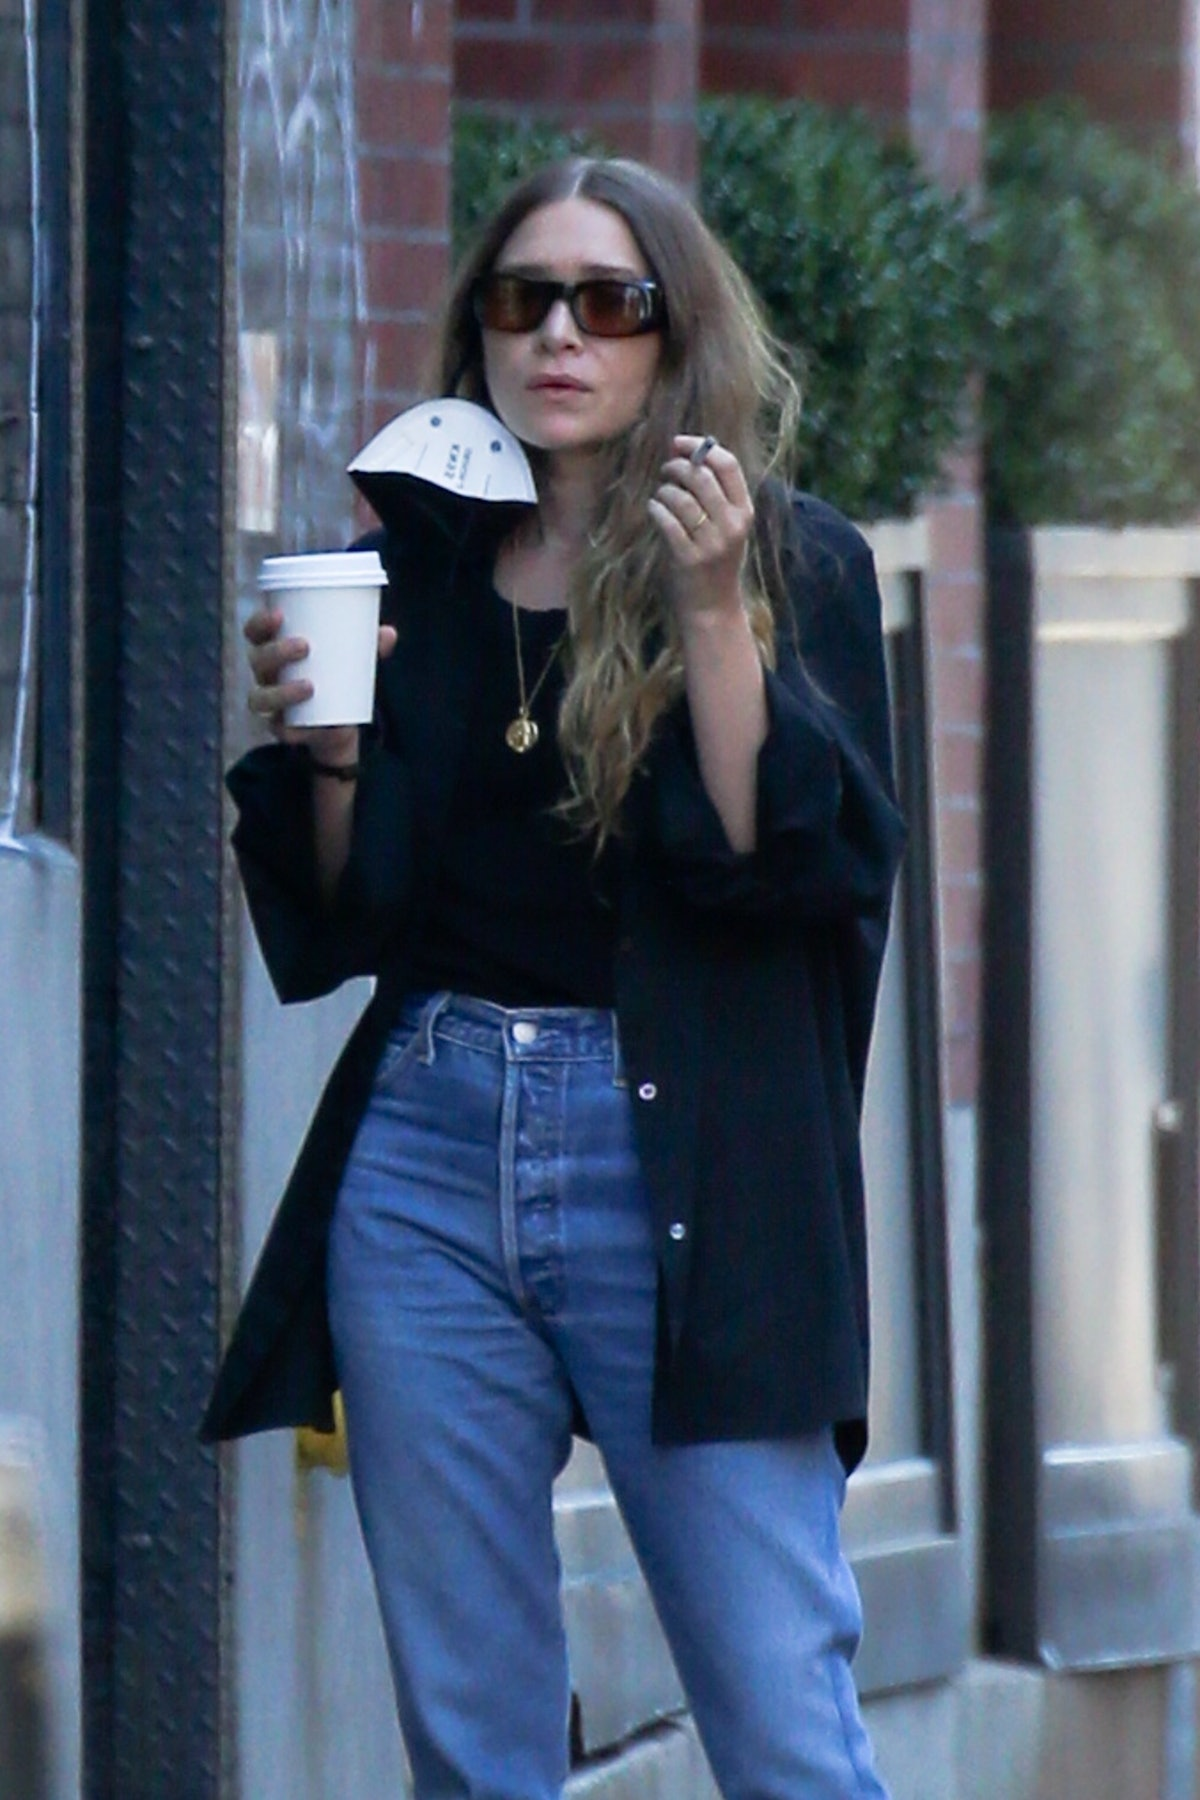 Ashley Olsen wears blue cuff jeans while grabbing coffee in NYC in 2021.